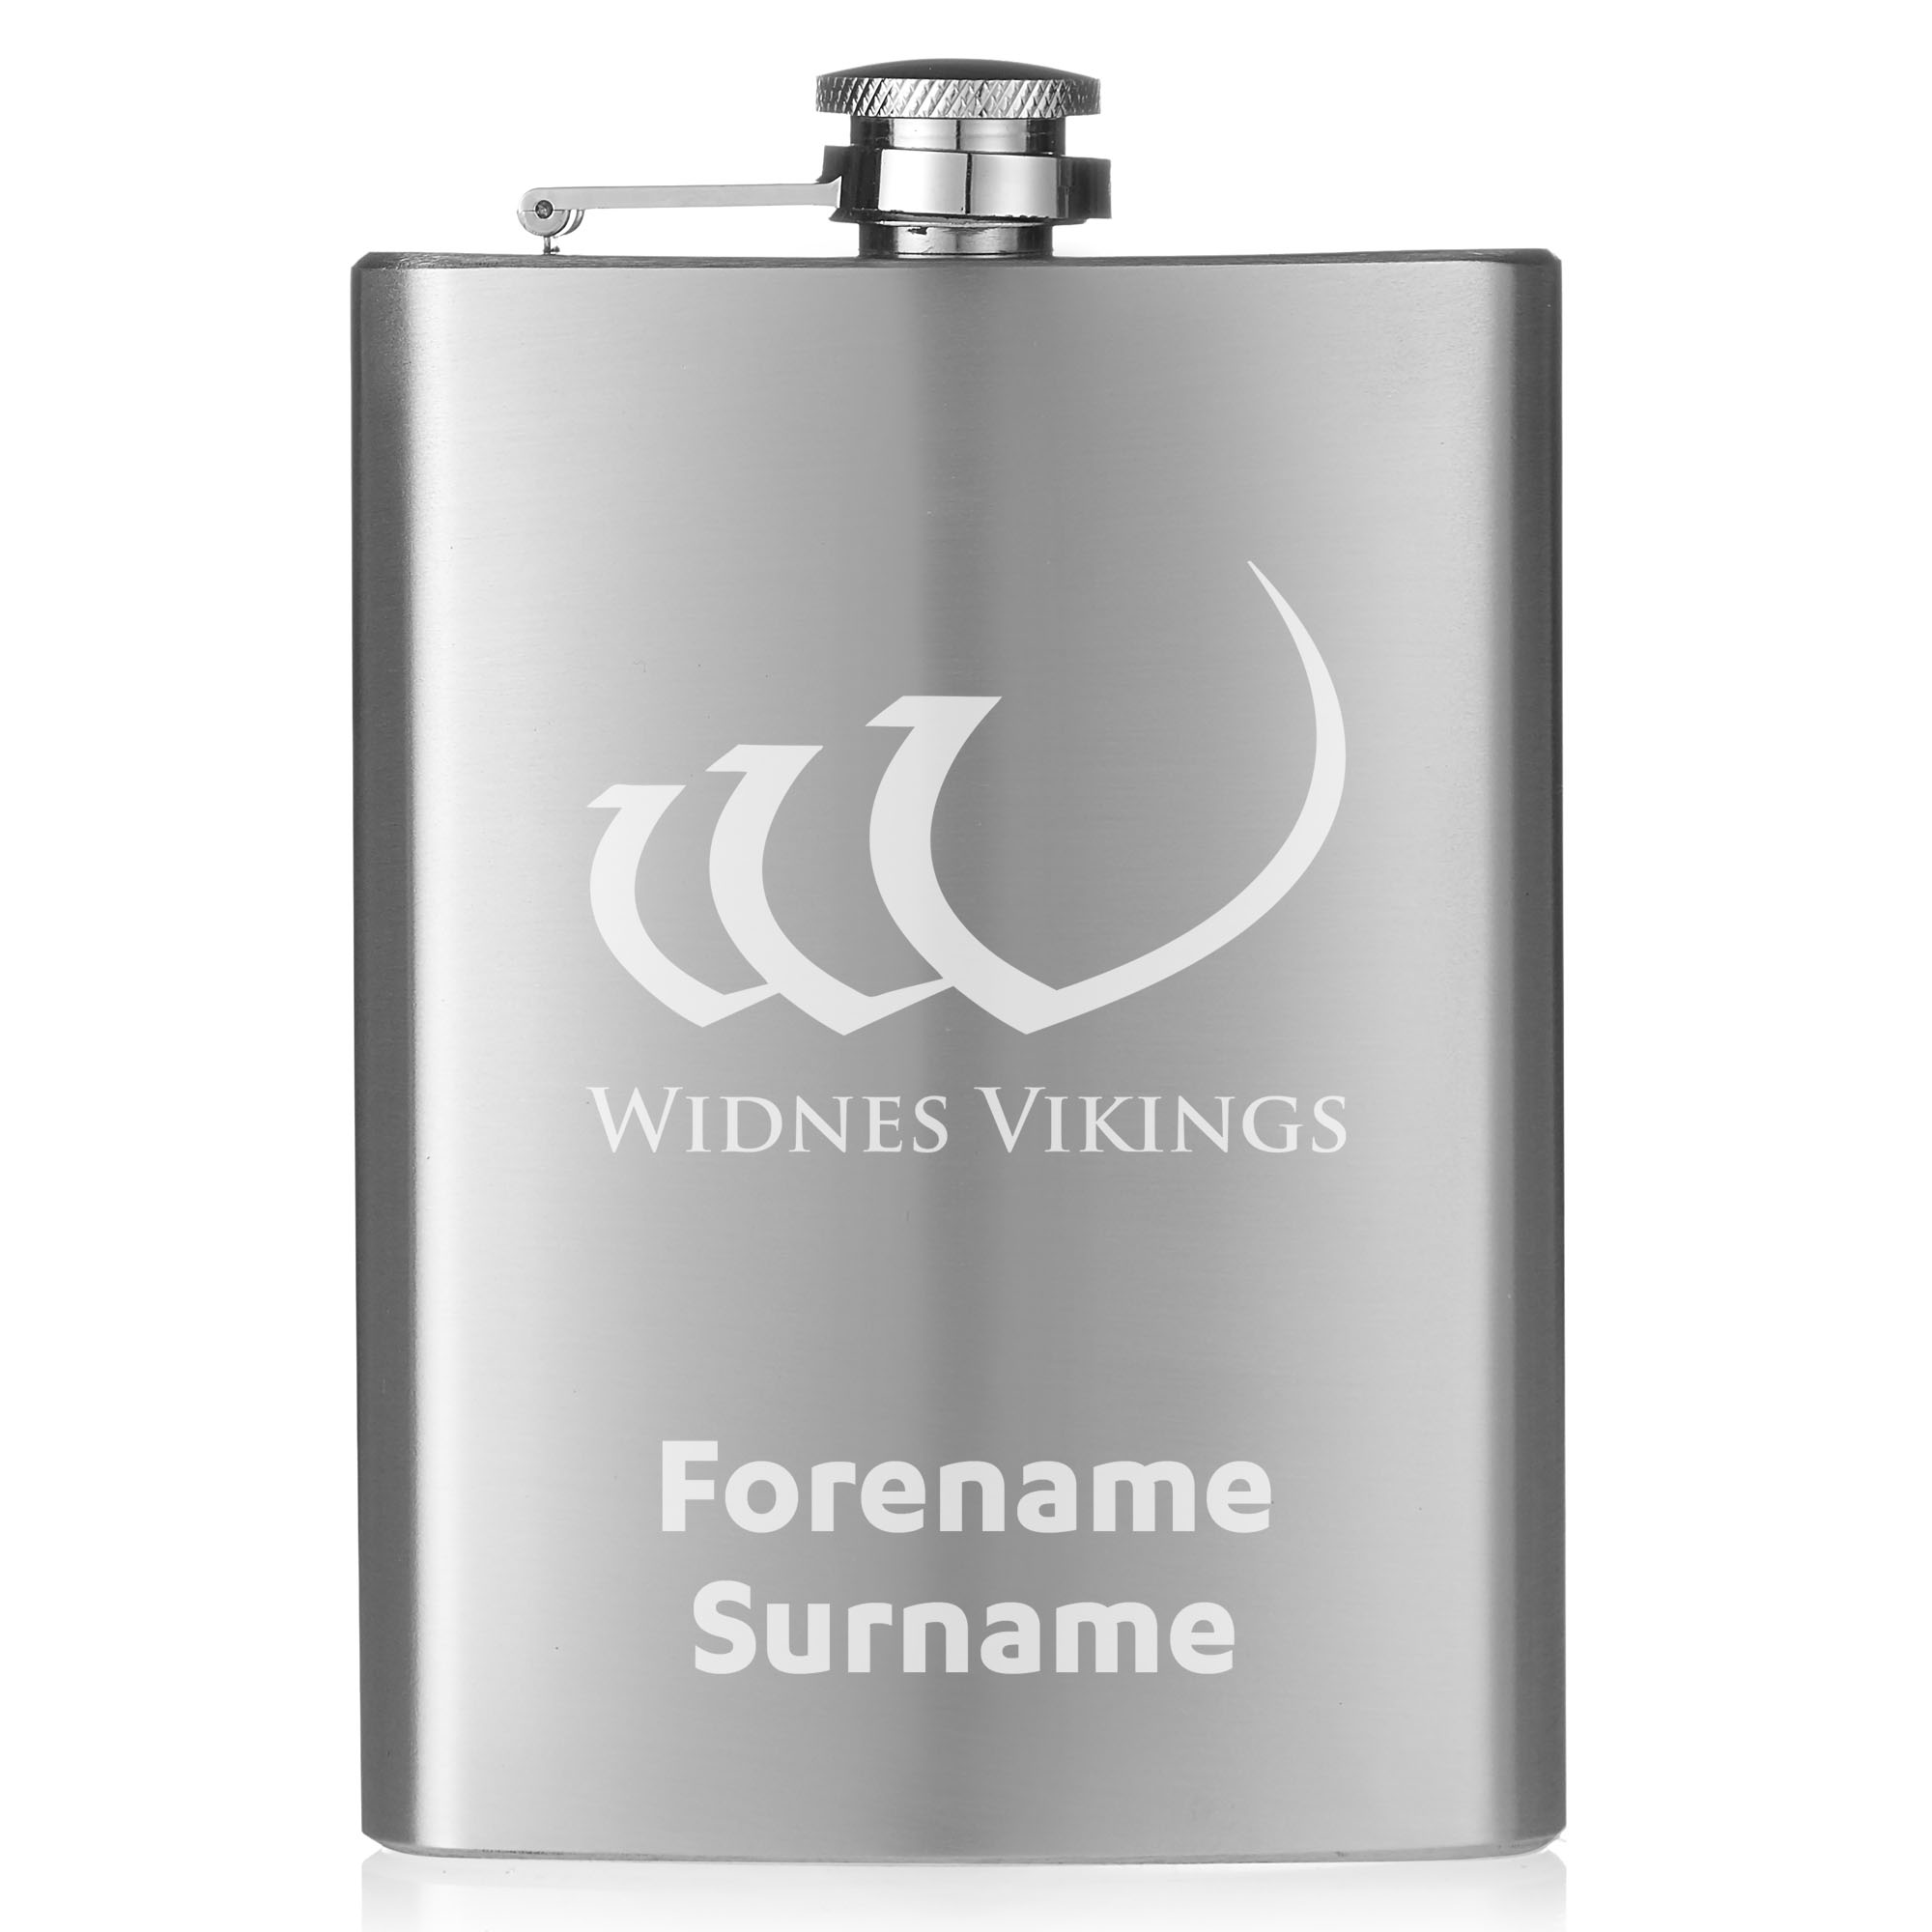 Widnes Vikings Crest Hip Flask